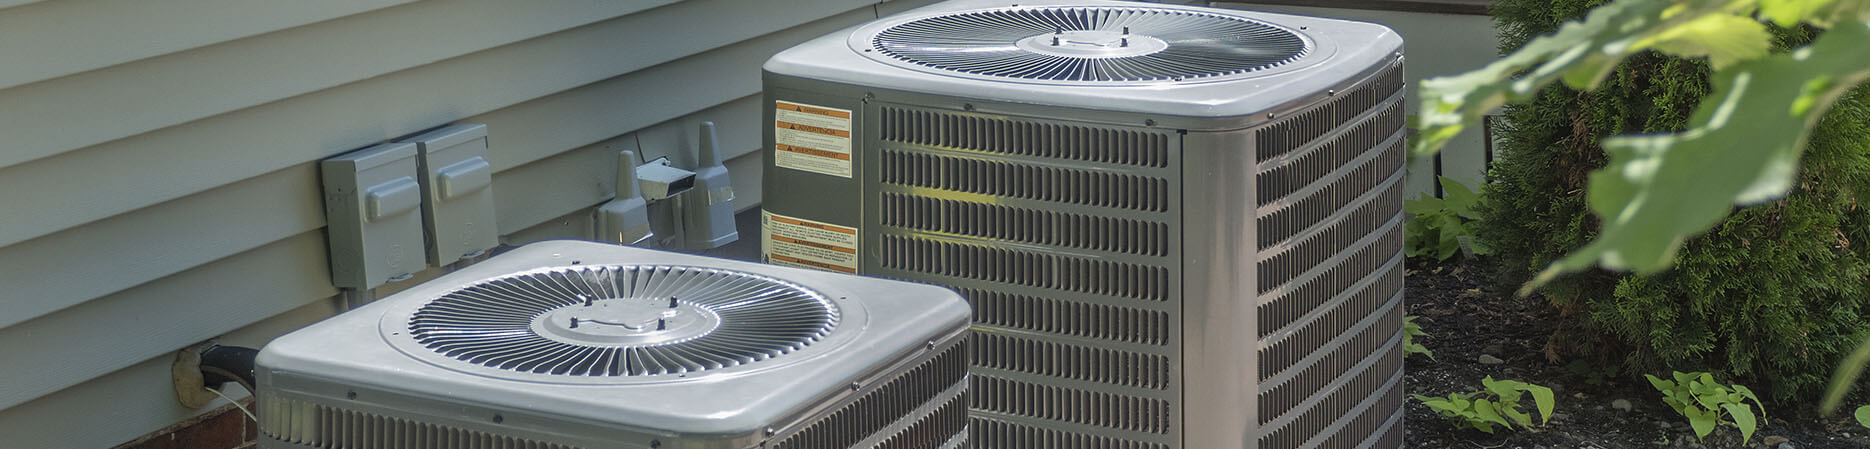 %Electric Heating